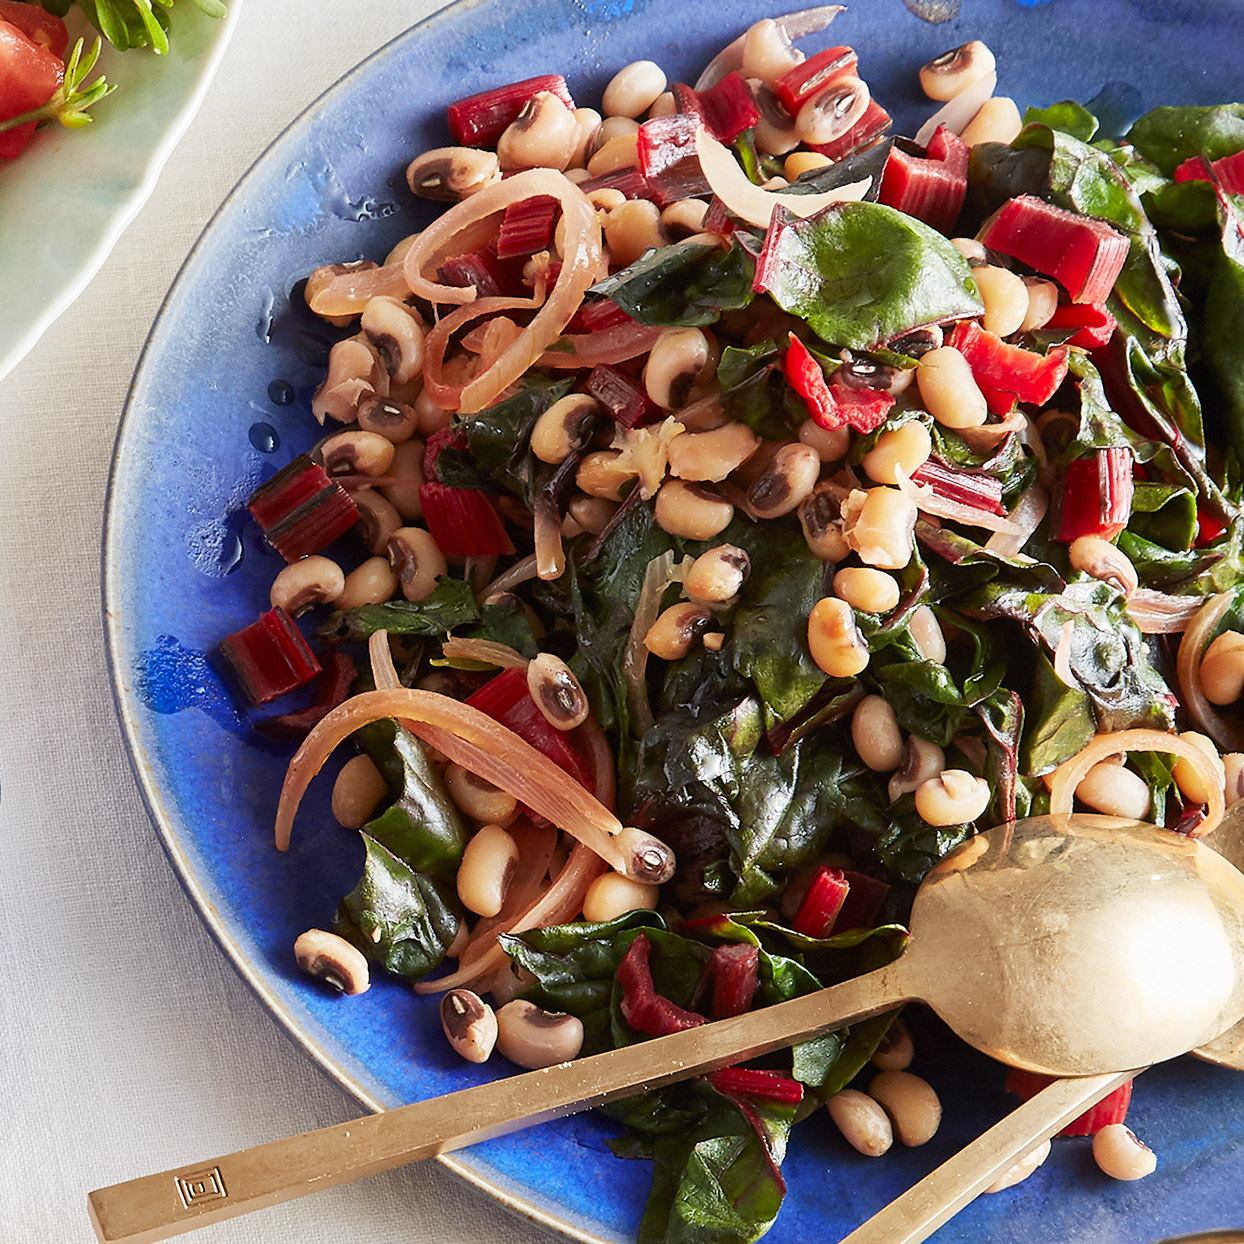 Two Cypriot specialties--good olive oil and fresh lemons--lend sunny flavor to this simple bean dish, served as a side in Cyprus. Chard adds a hearty touch. Top with a dollop of Greek yogurt, or nondairy yogurt to keep it vegan, for a meatless meal. Source: EatingWell Magazine, March 2020